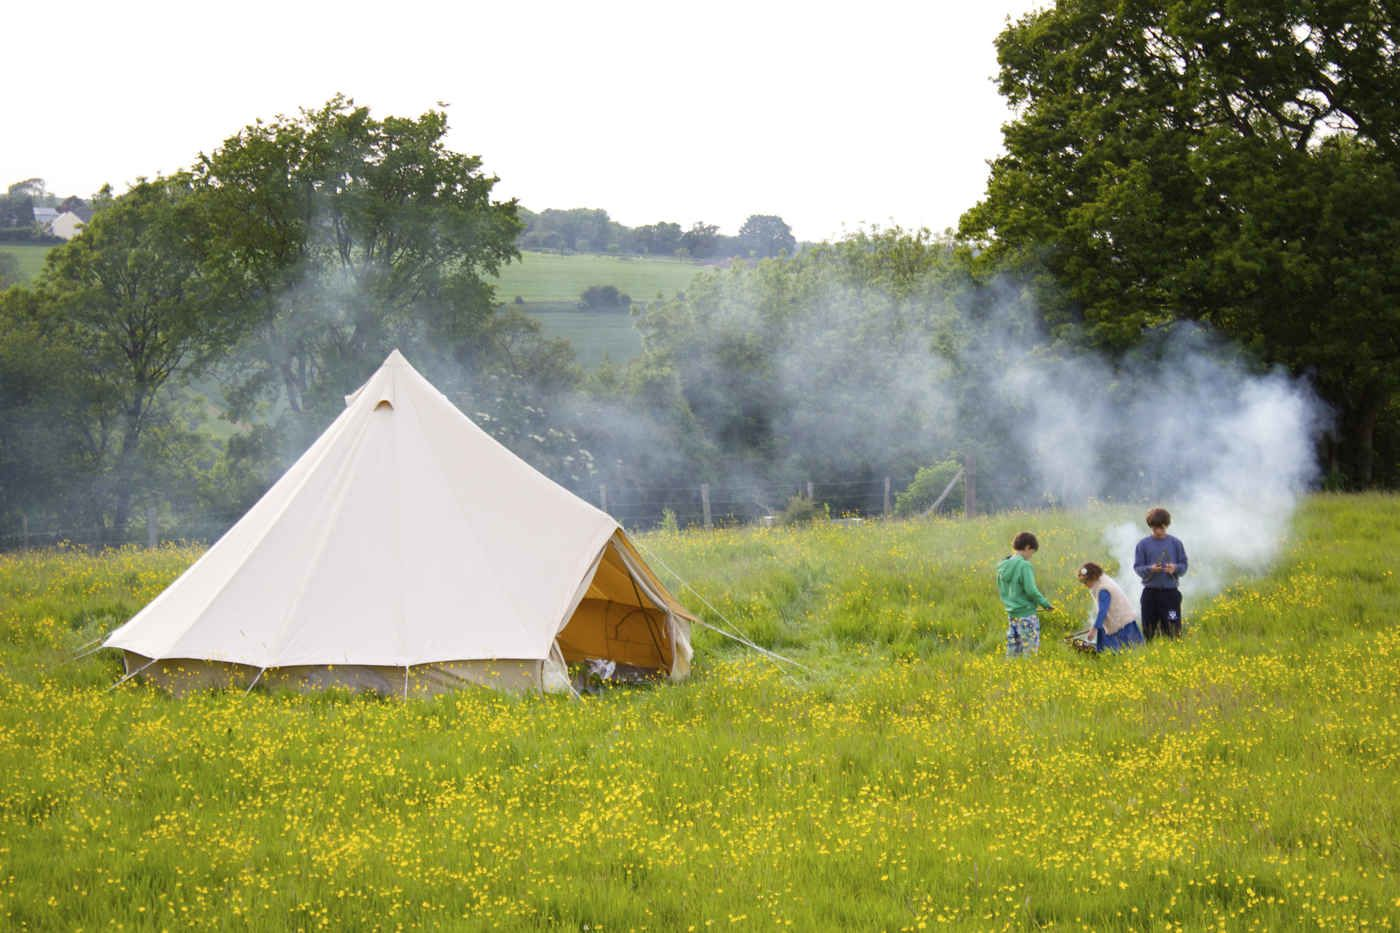 Campsites in South East England